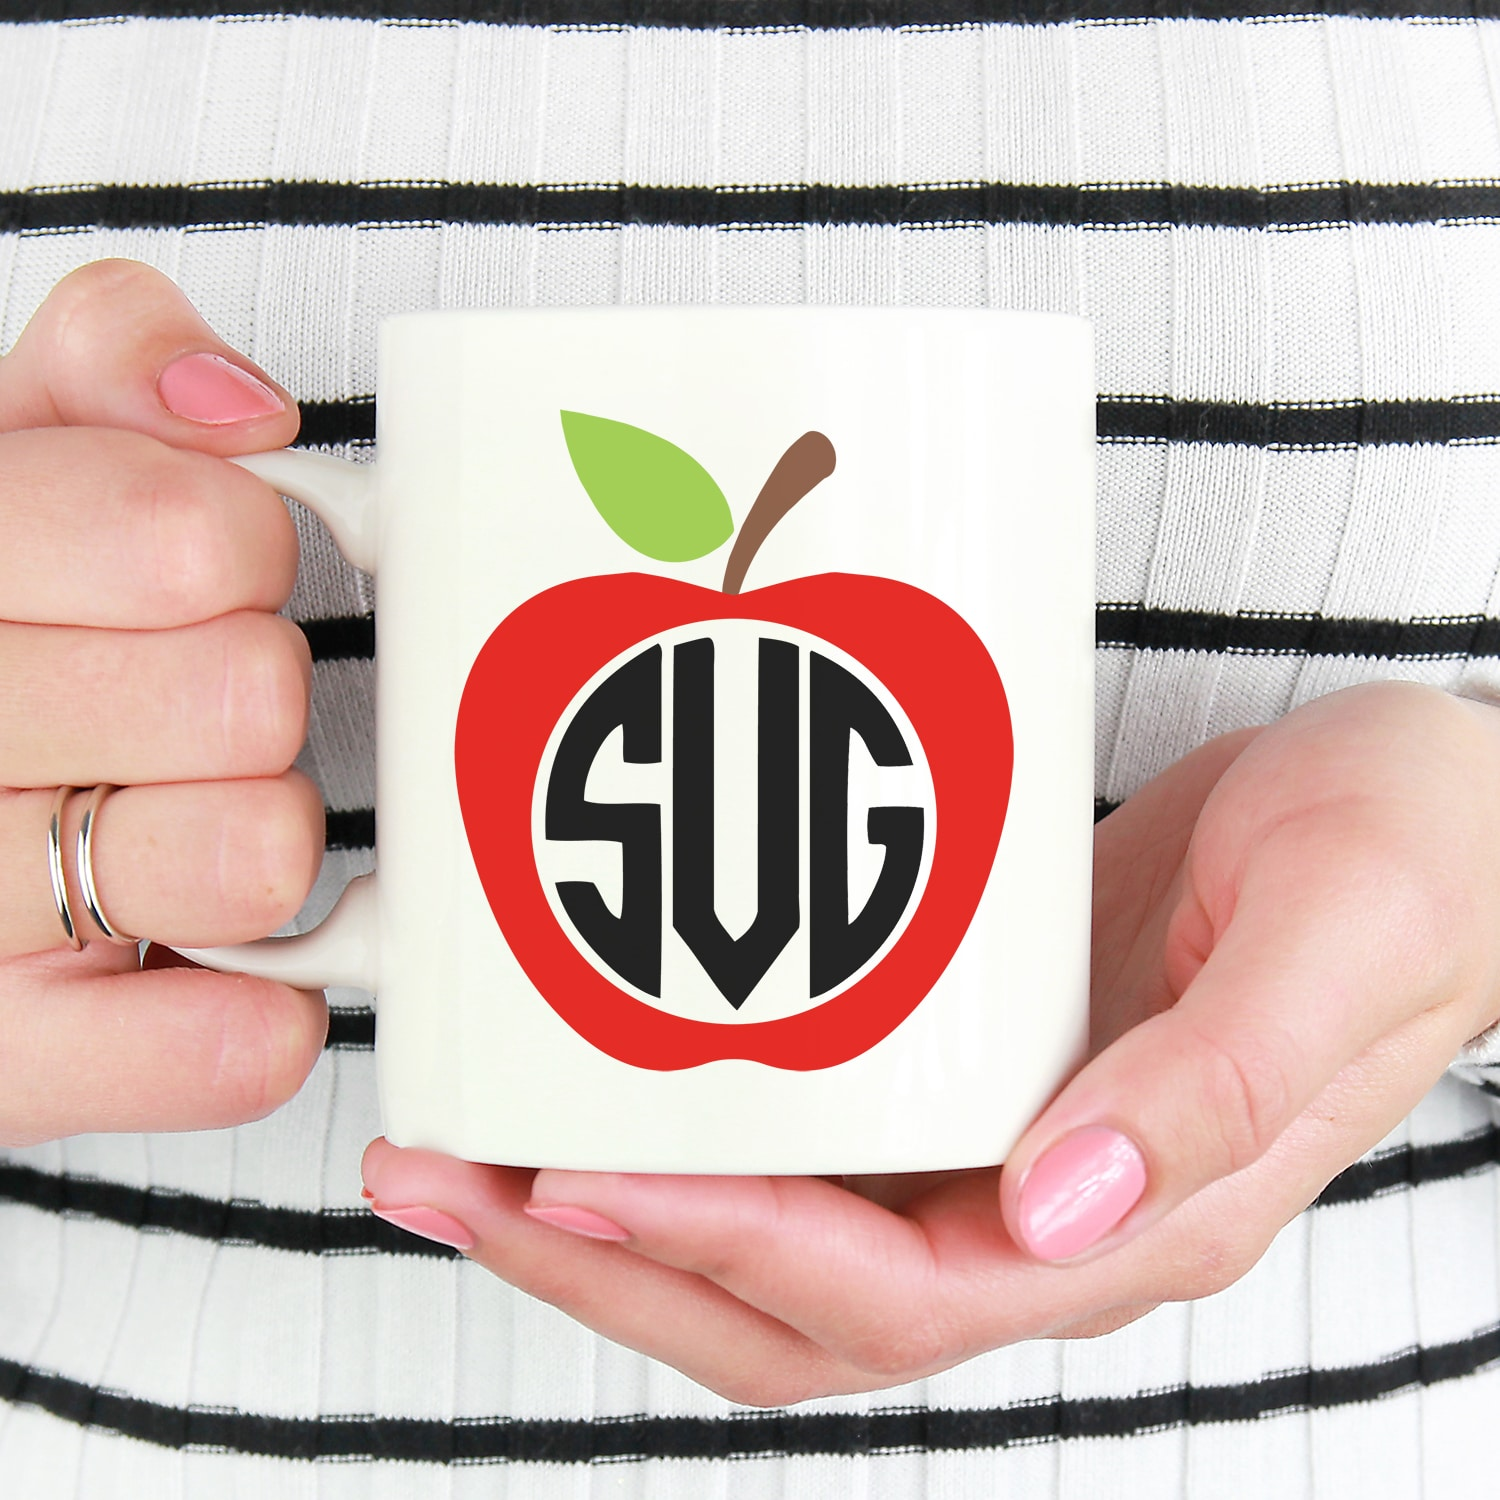 Close up of hands holding white mug with red apple design and monogram SVG